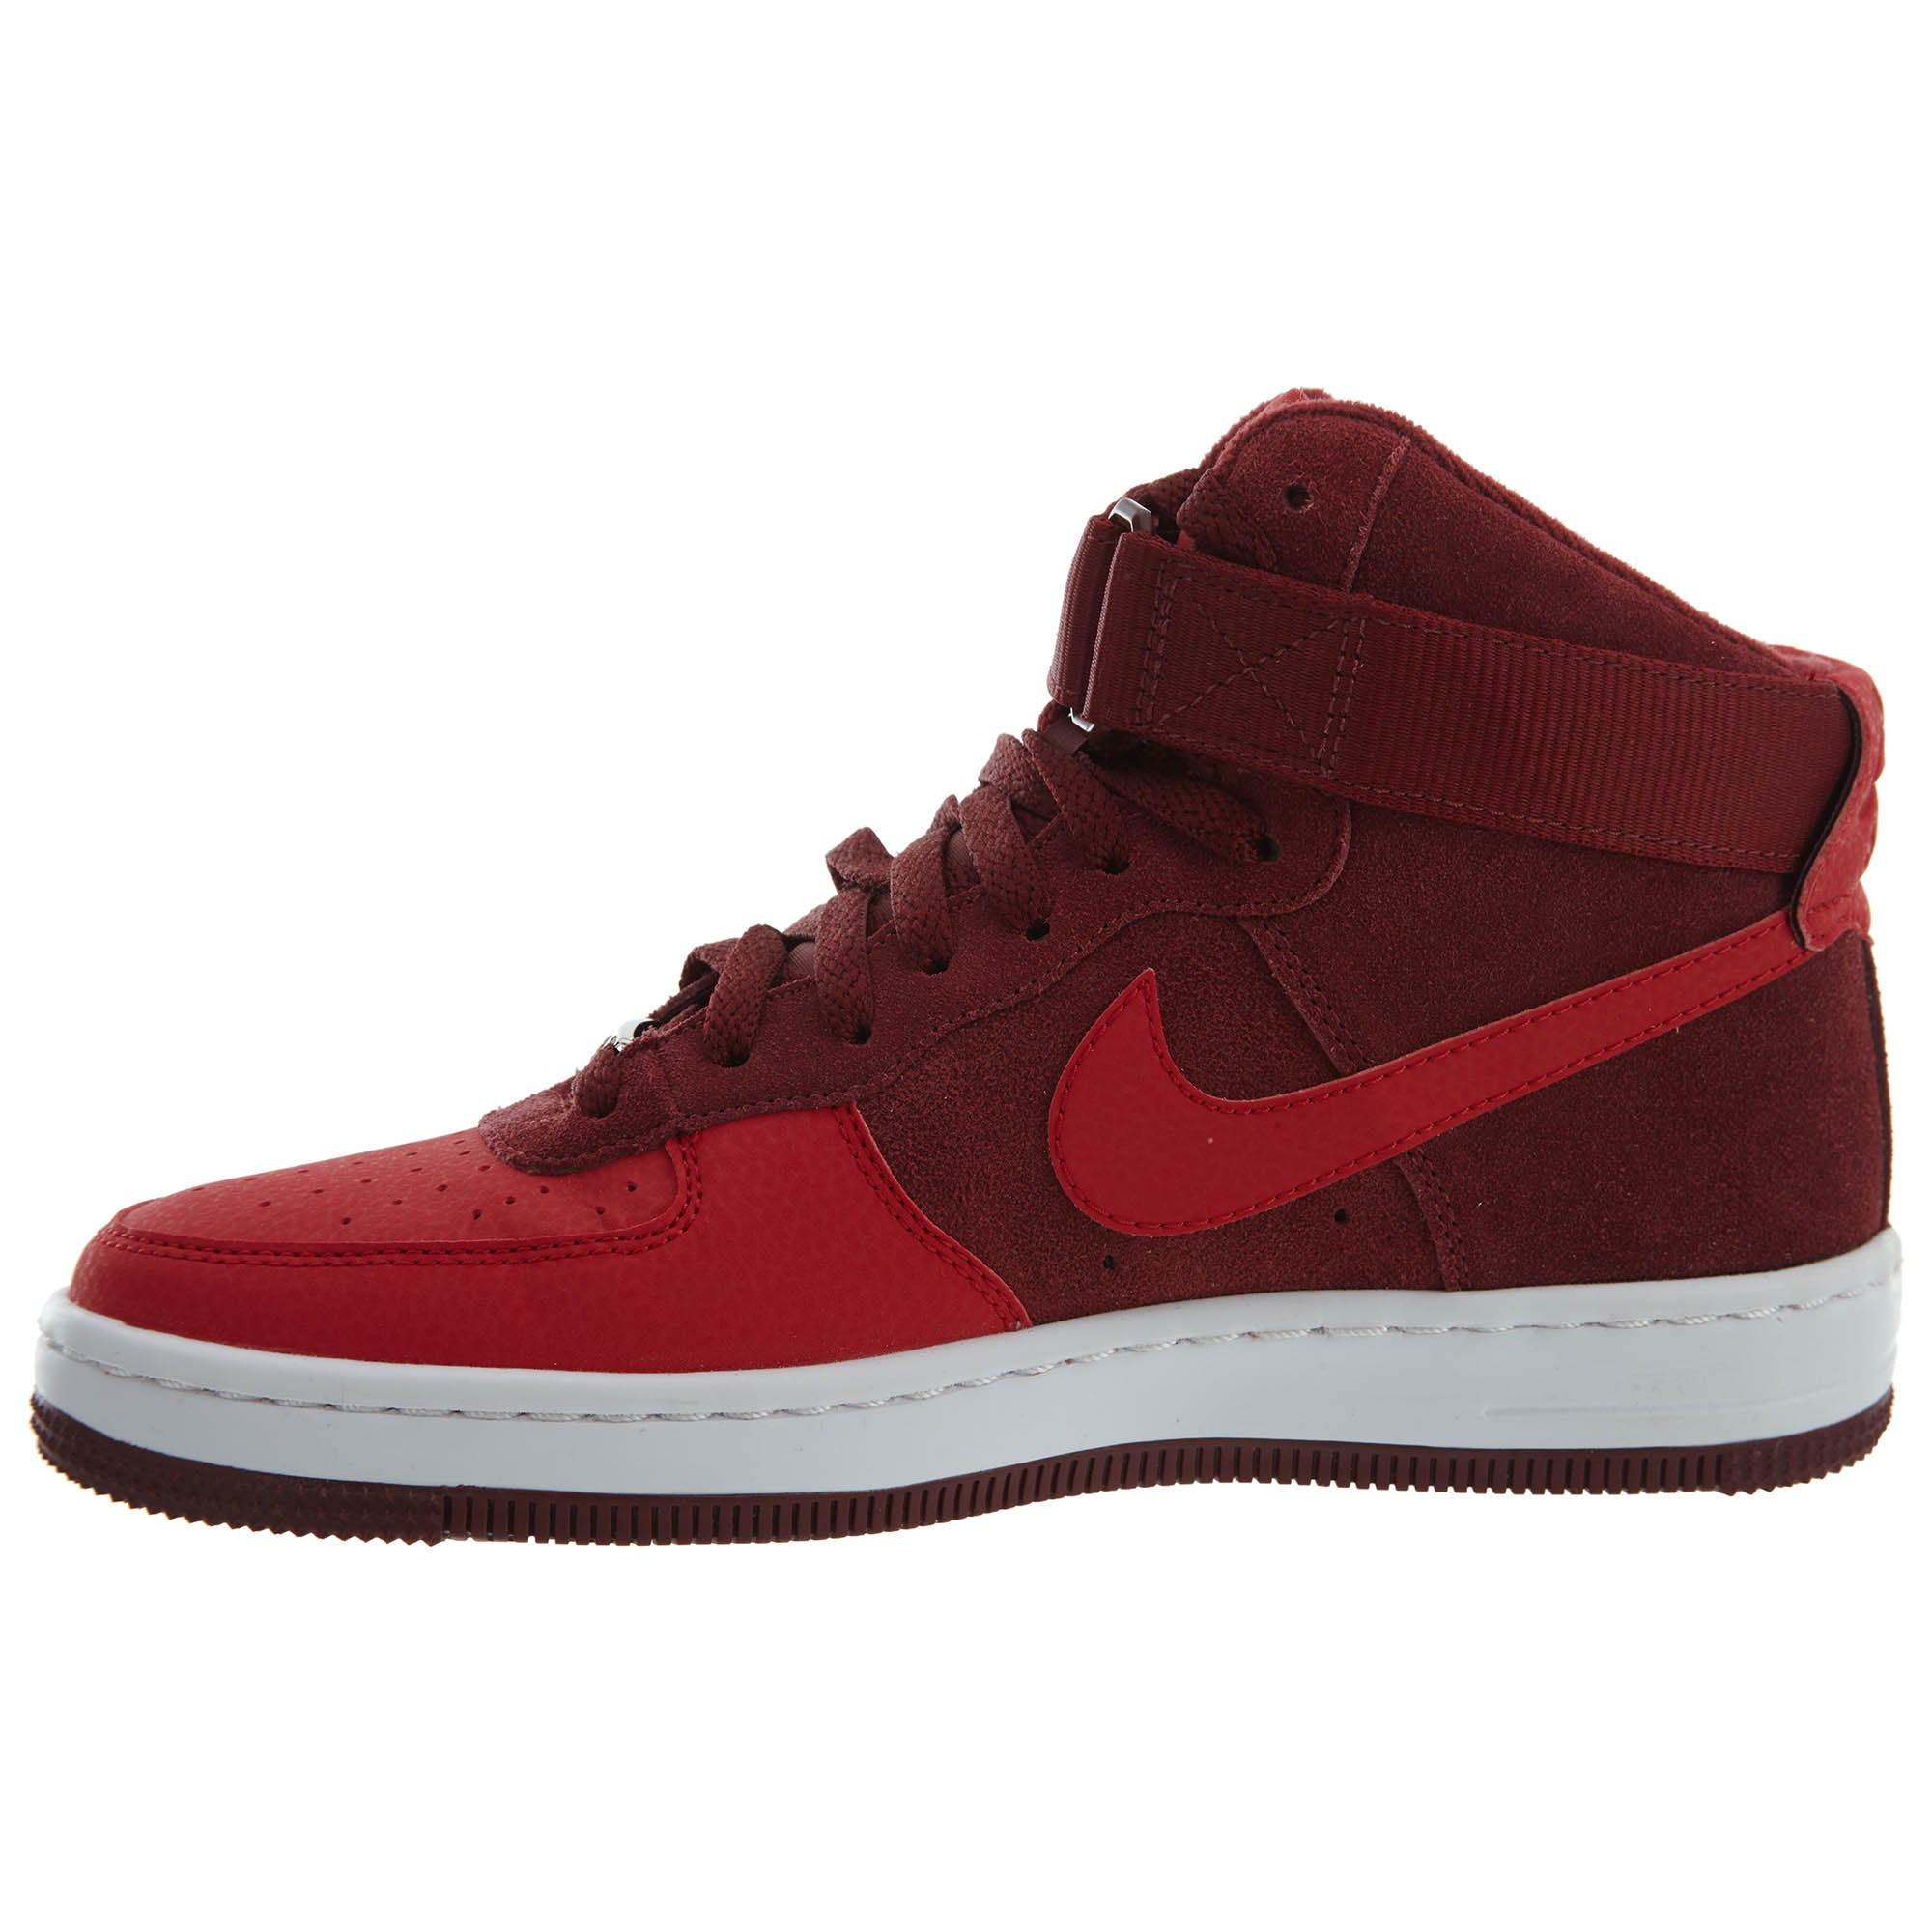 Nike Af1 Ultra Force Mid  Womens Style : 654851